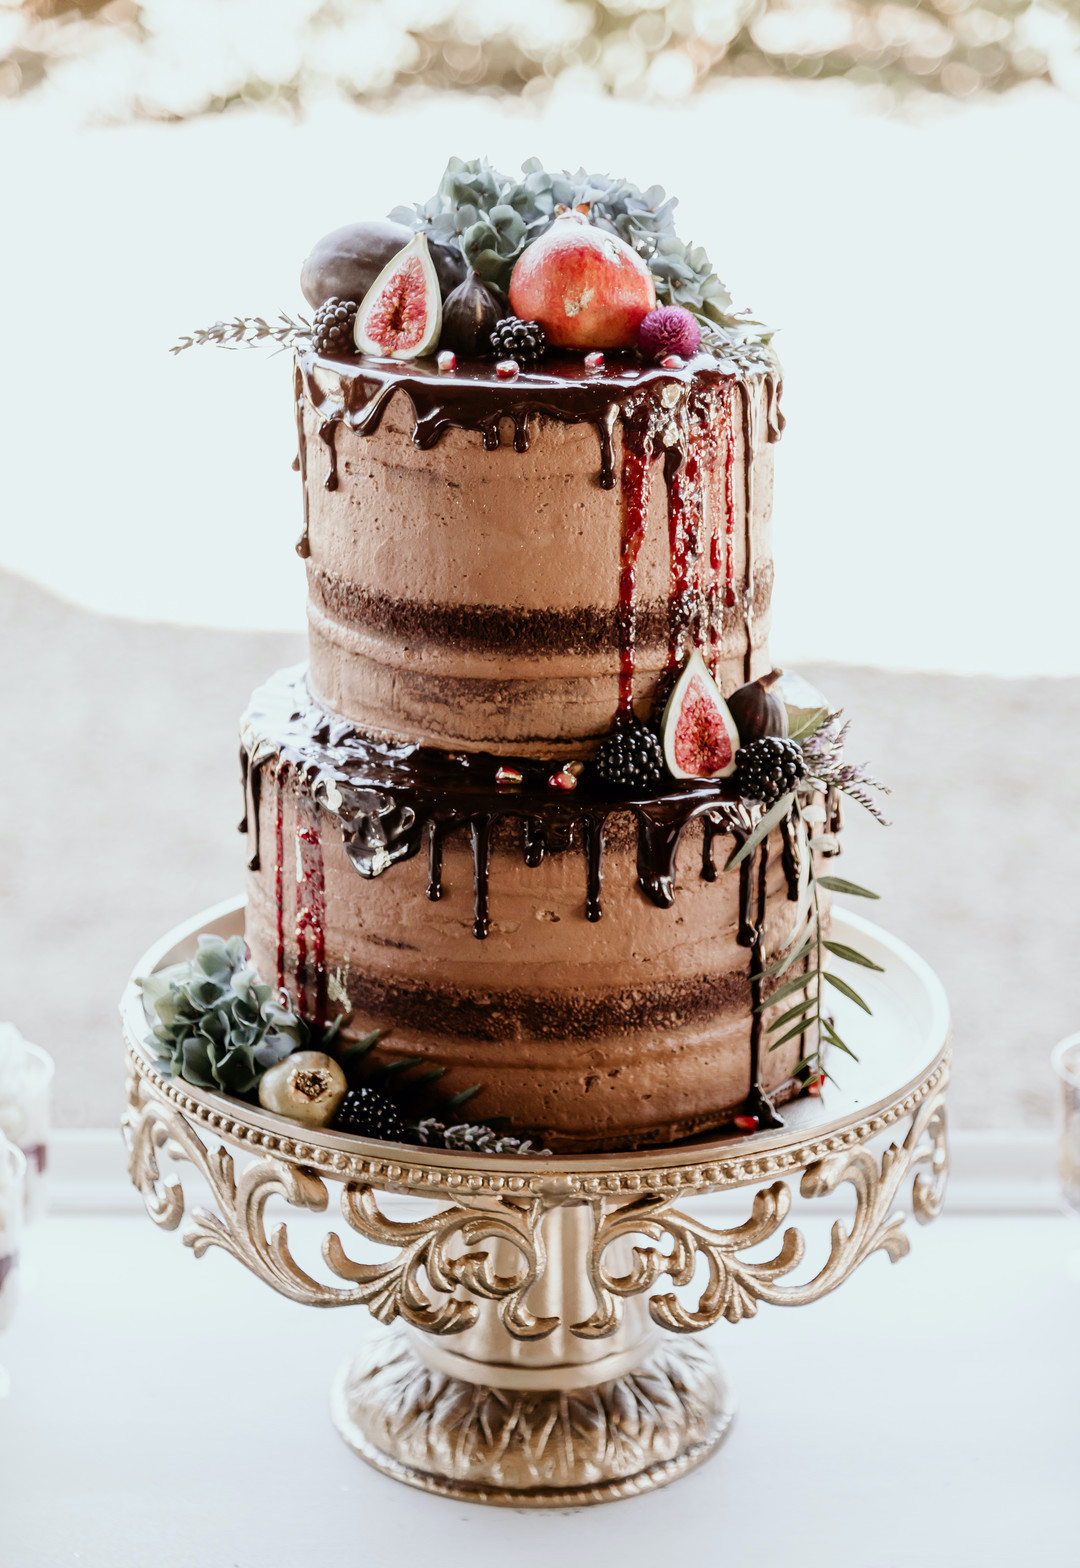 decadent chocolate cake on gold platter topped with pomegranates and berries